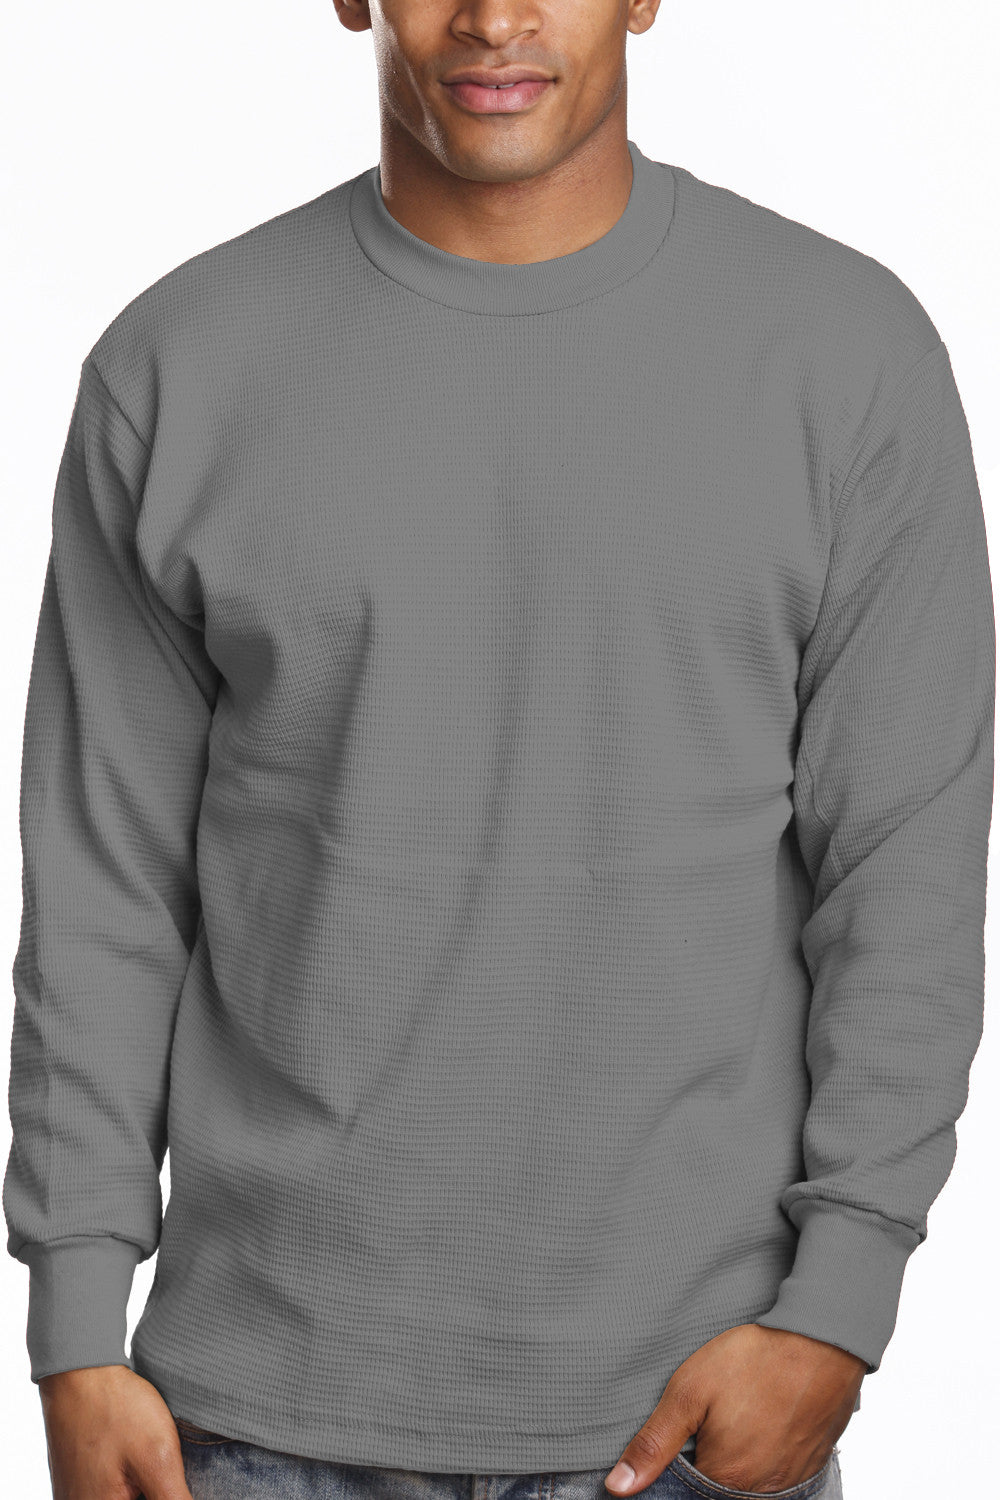 Mens Long Sleeve Thermal Knit Top Shirt Heather Grey